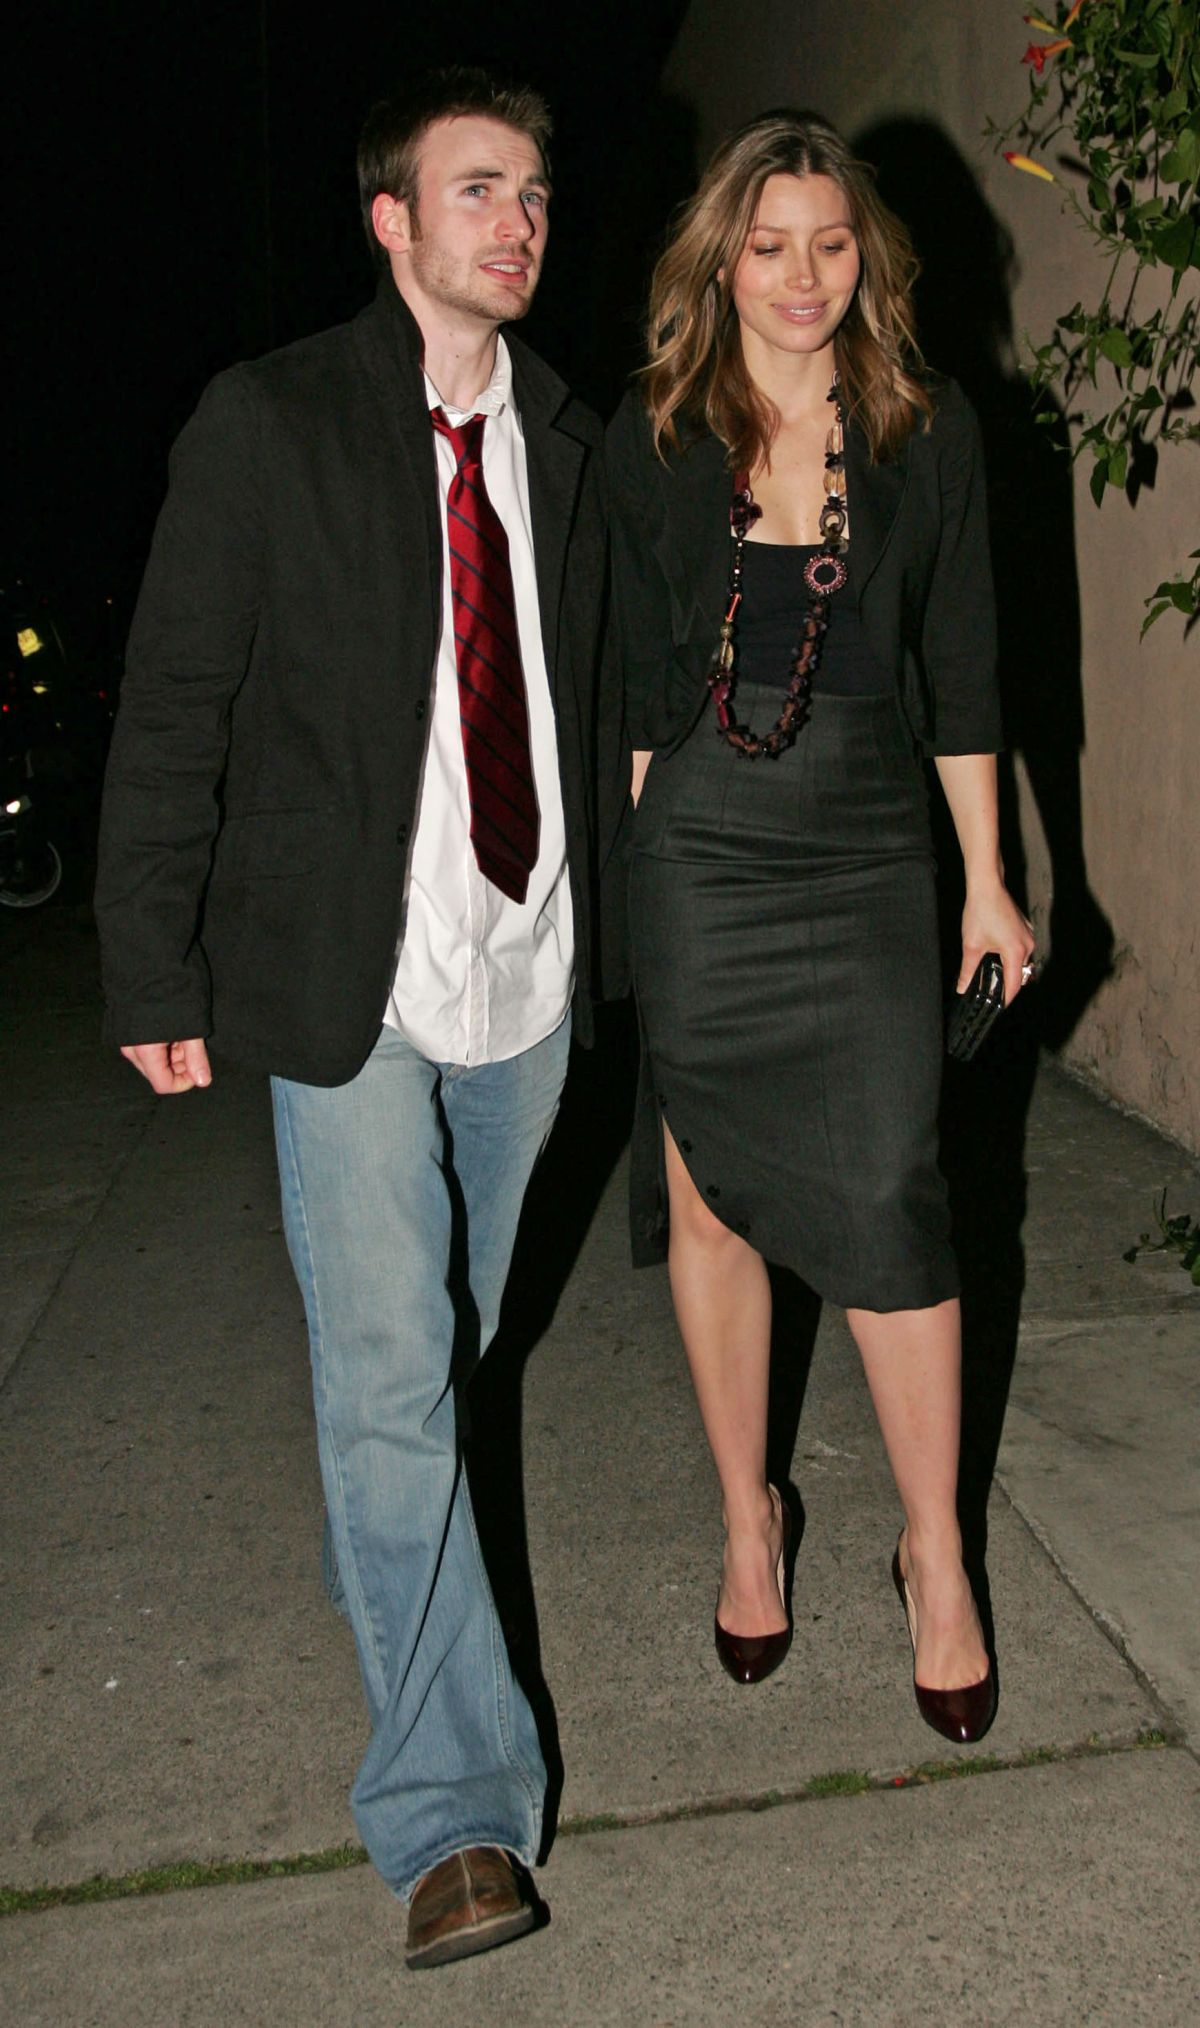 Best from the Past - JESSICA BIEL and Chris Evans at CAA Pre-golden Globes Party in Santa Monica, 01/13/ 2006